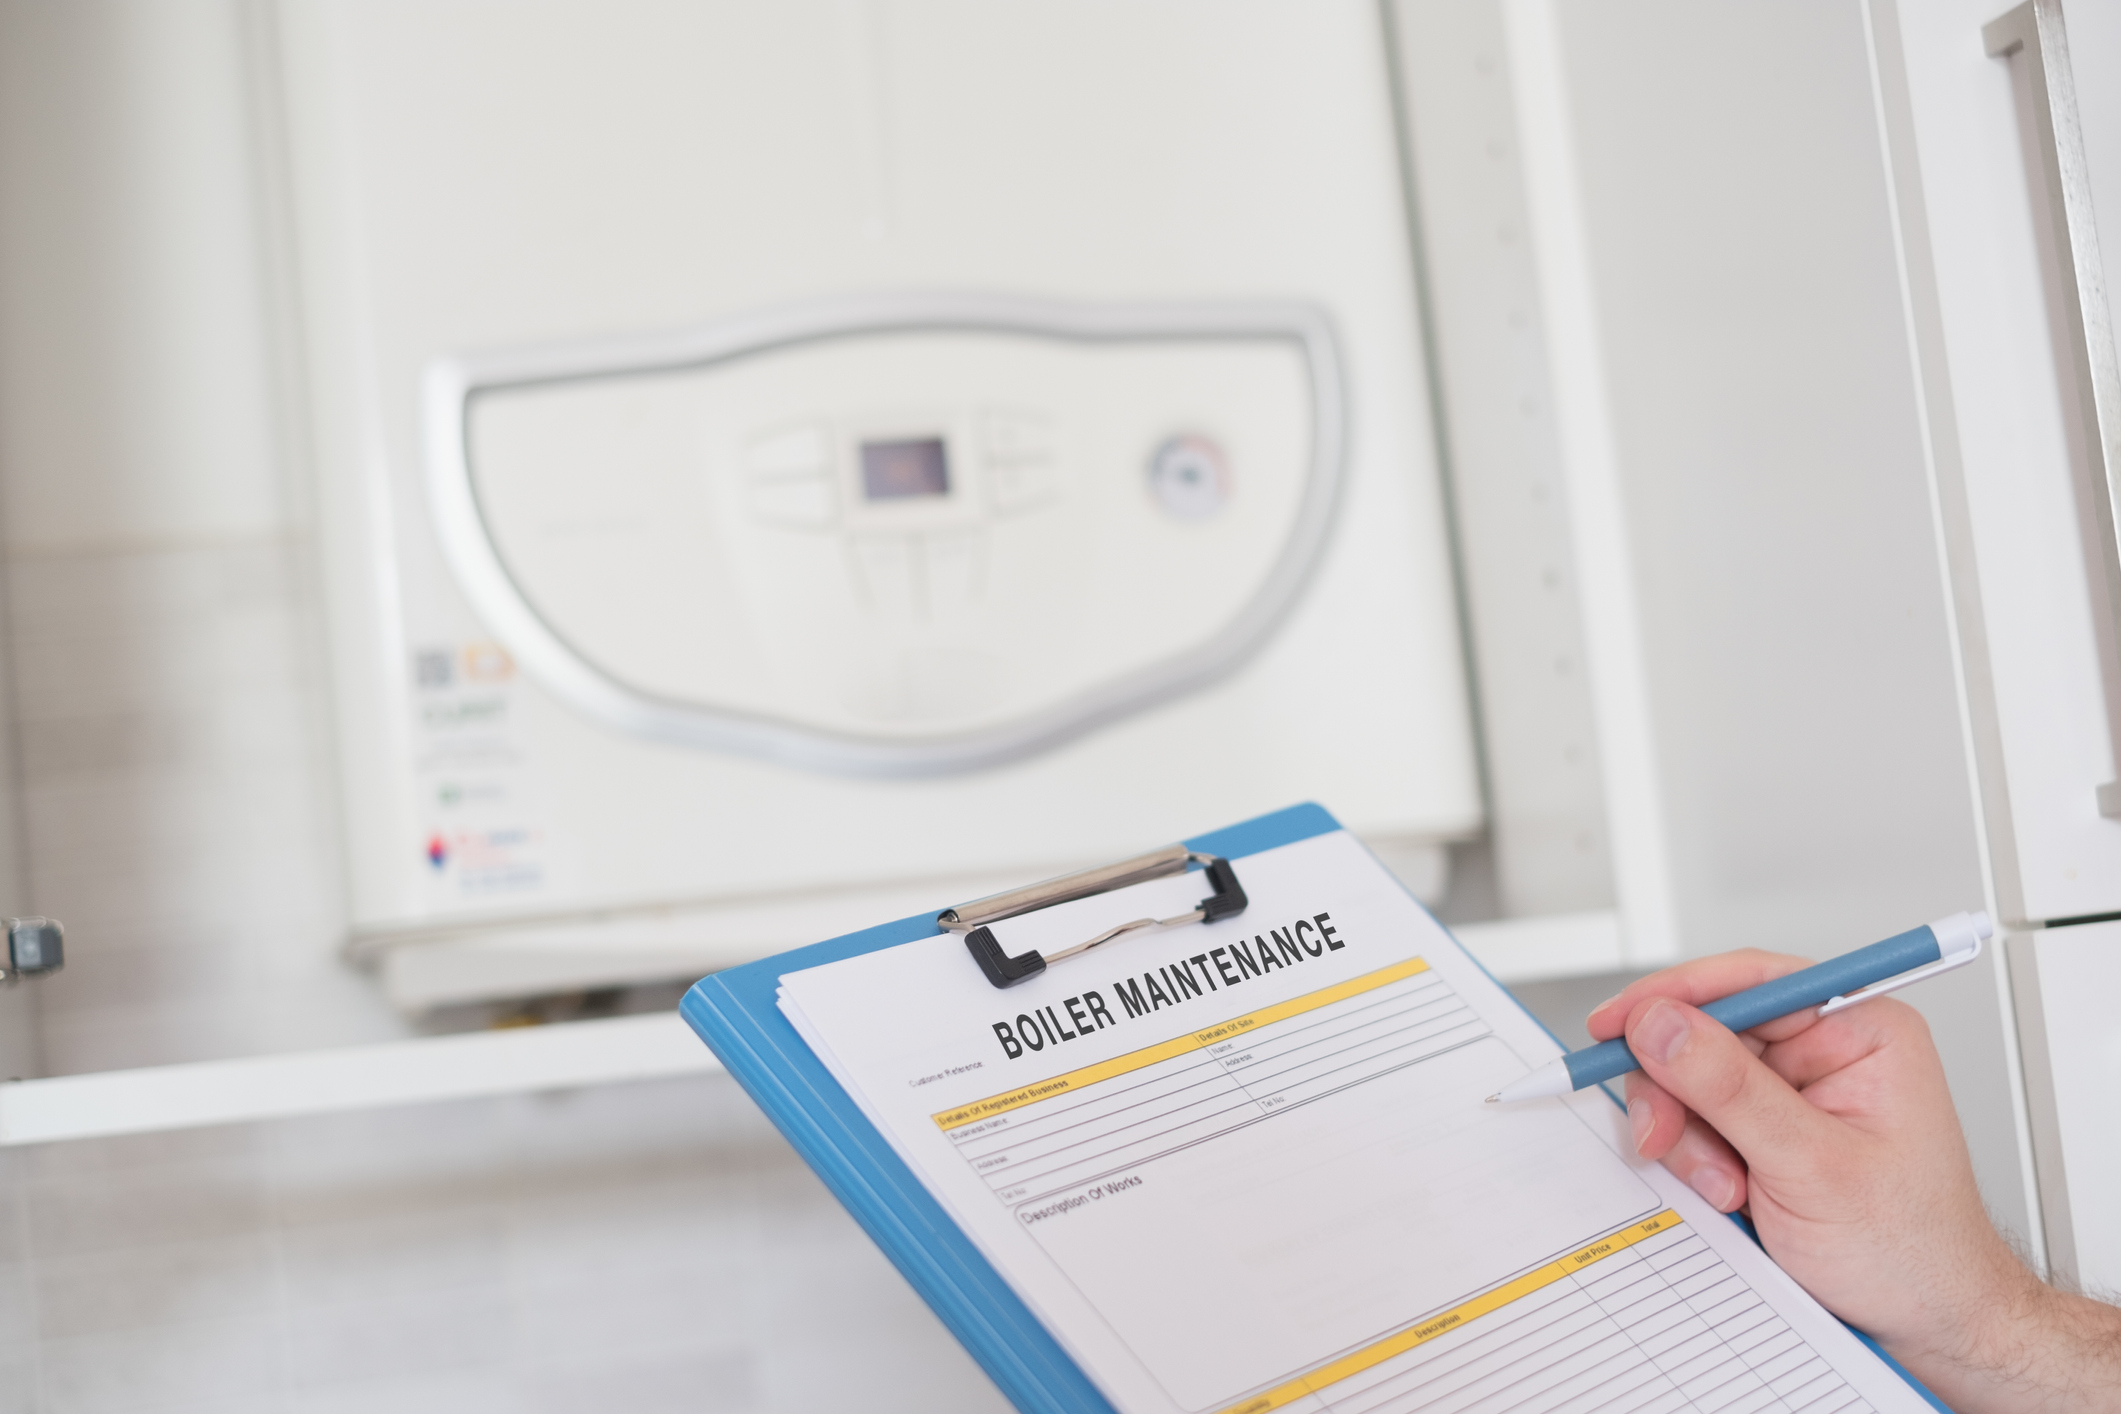 Boiler maintenance at your holiday home